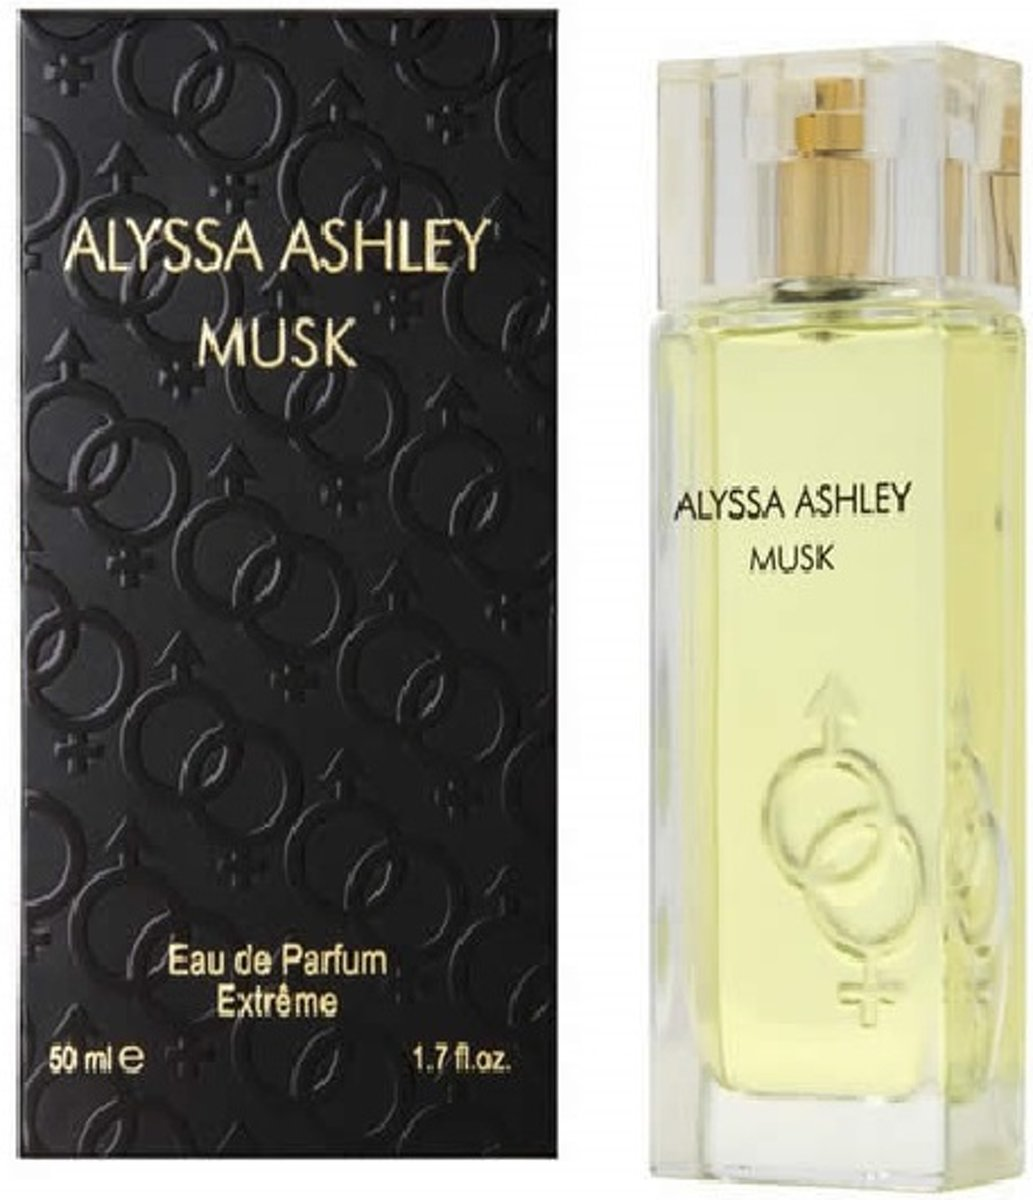 Alyssa Ashley Musk Eau de Parfum Extreme - Damesgeur - 50 ml